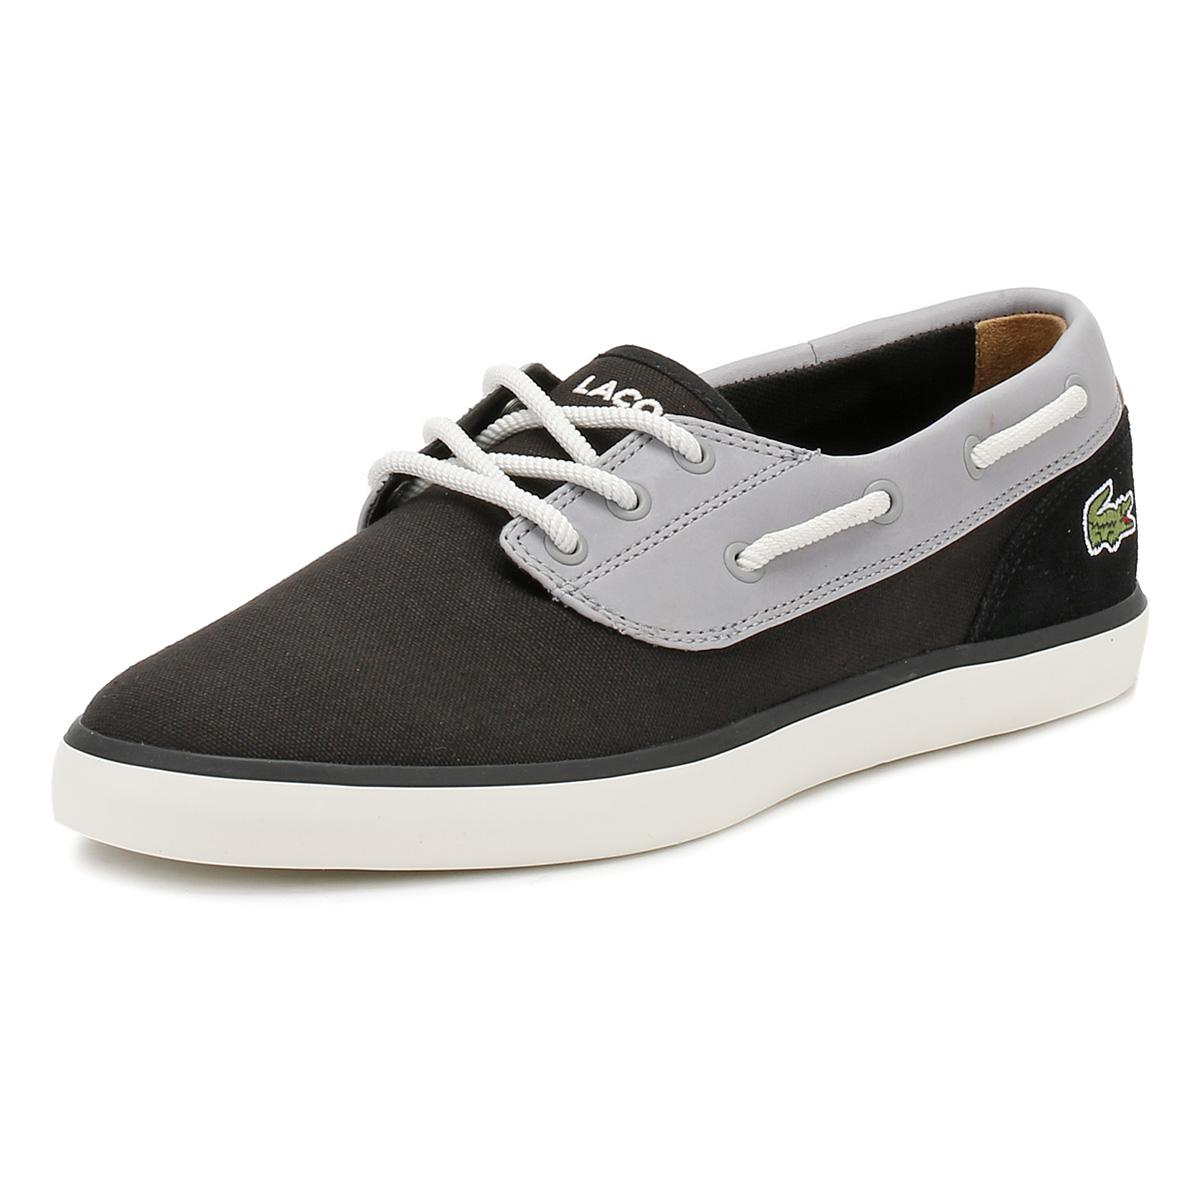 330124869 Lyst - Lacoste Mens Black Jouer Deck 117 1 Cam Shoes in Black for Men